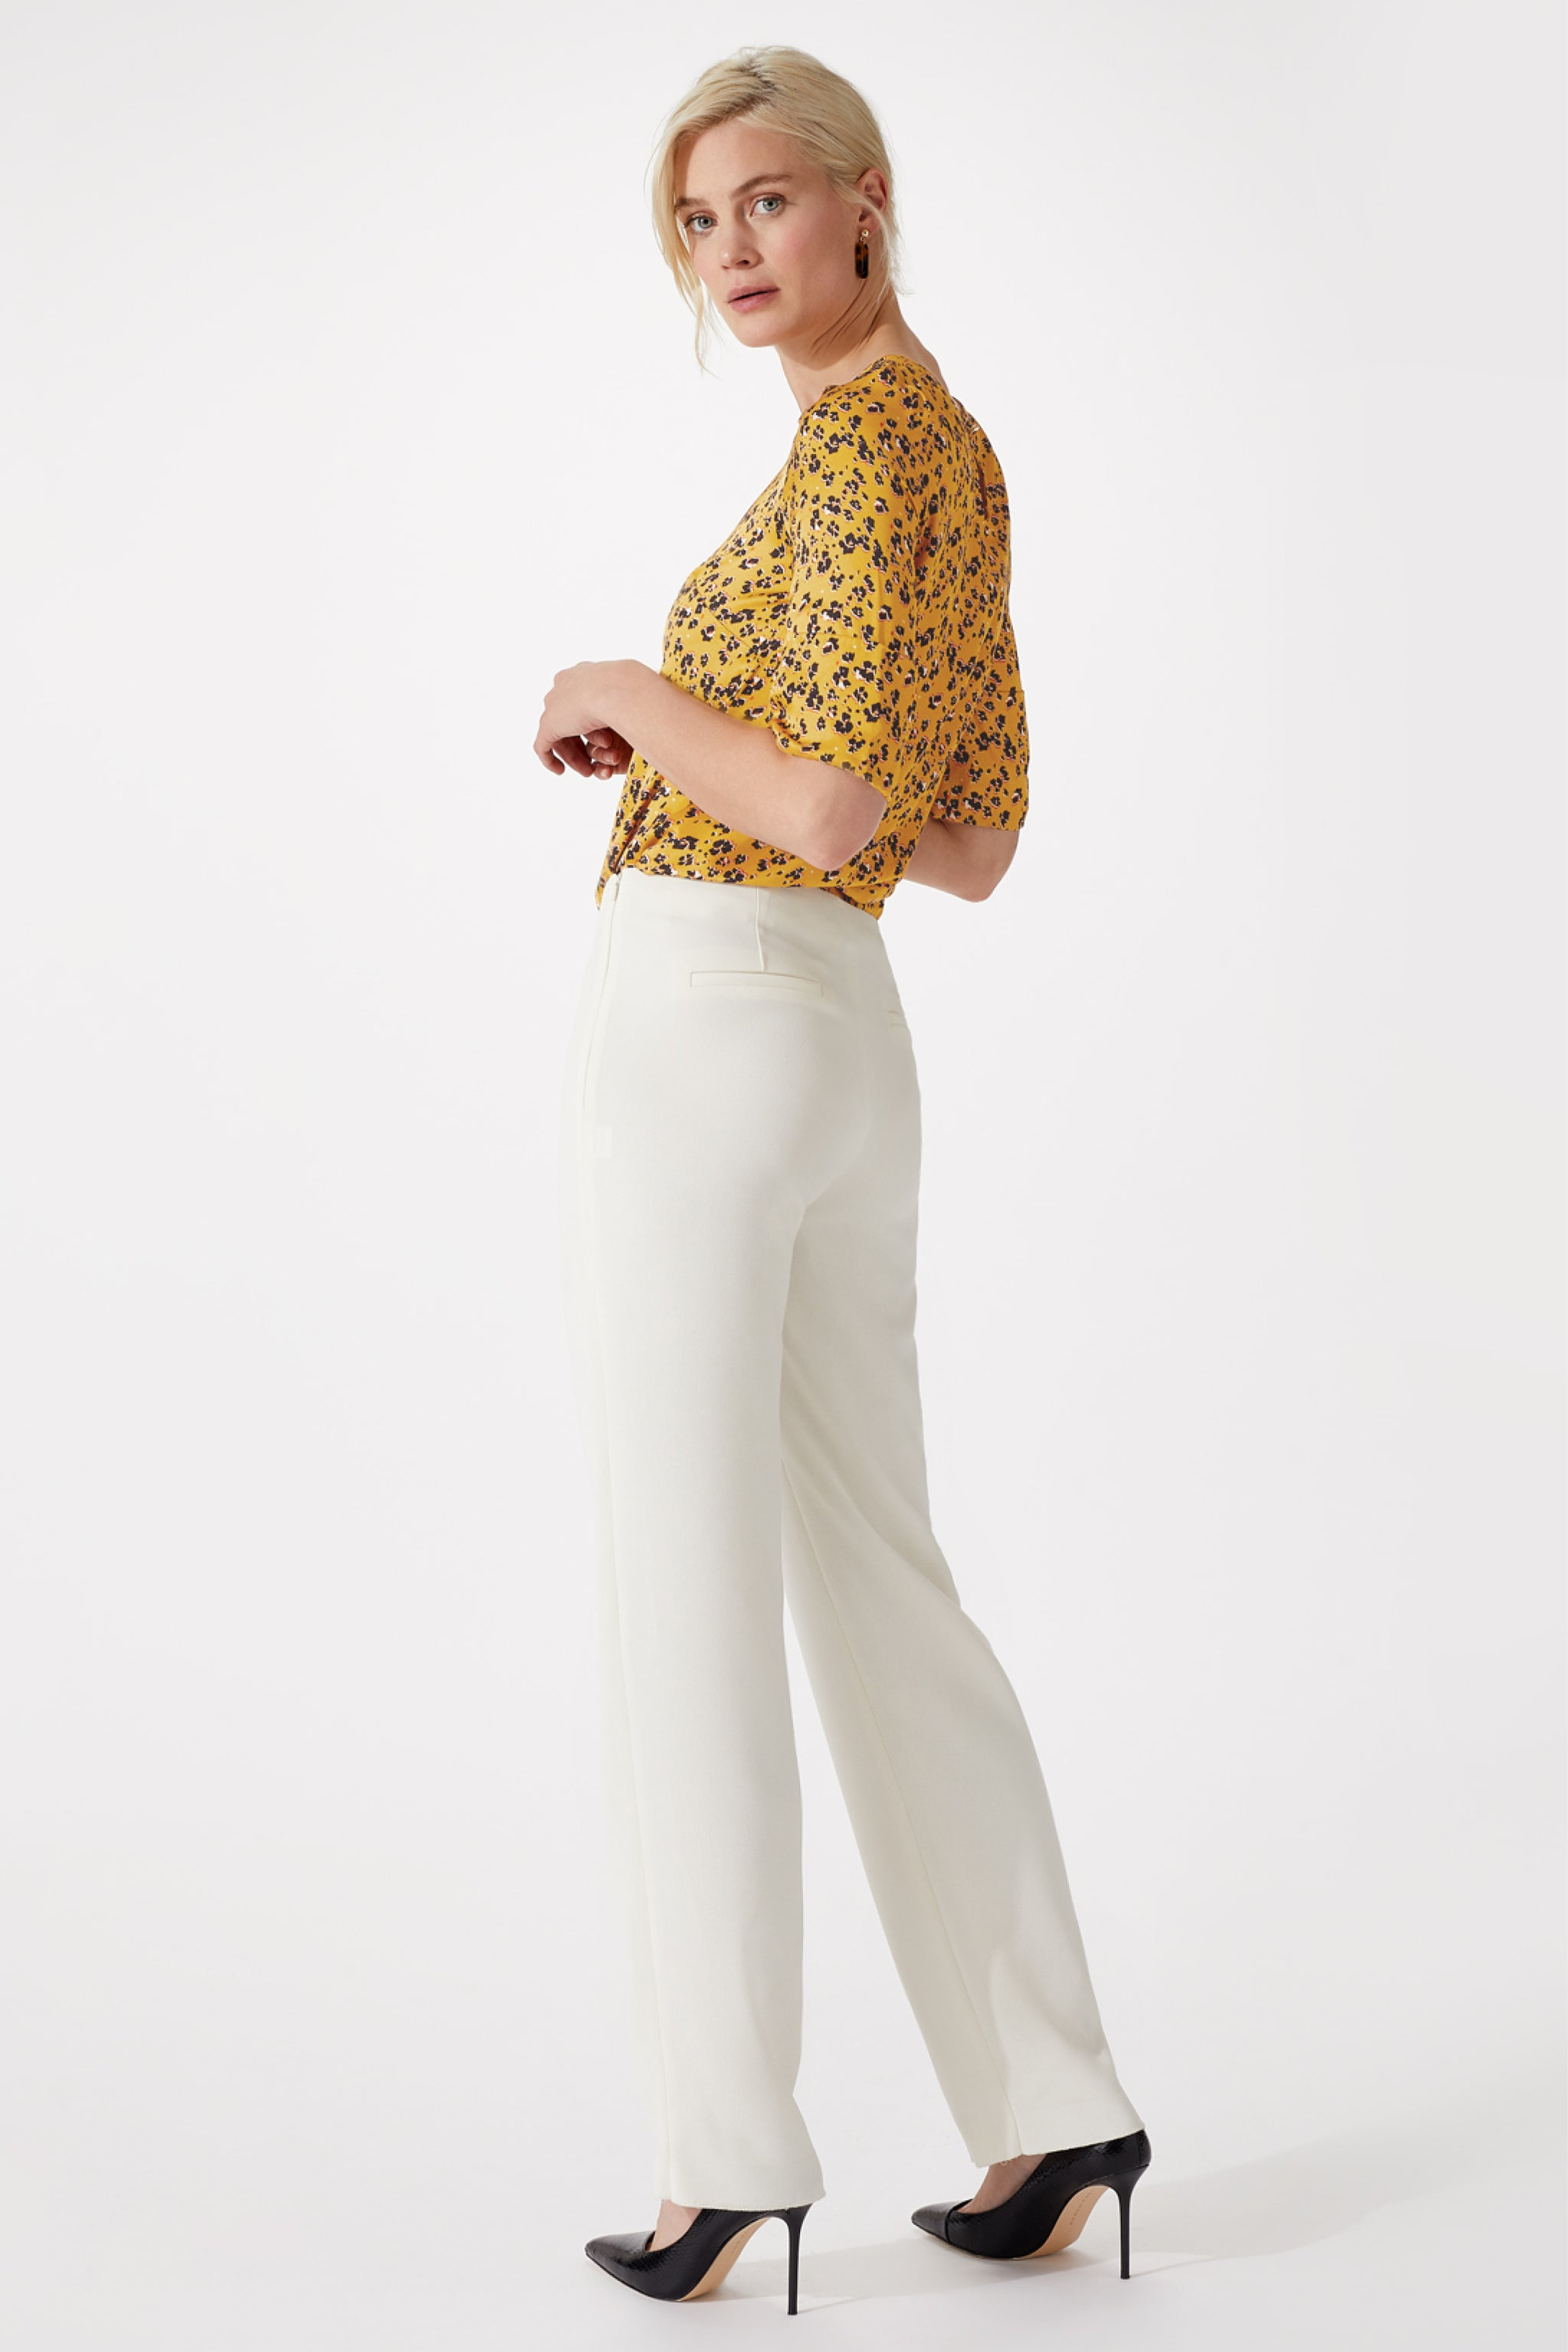 Keswick Golden Flower Print Top